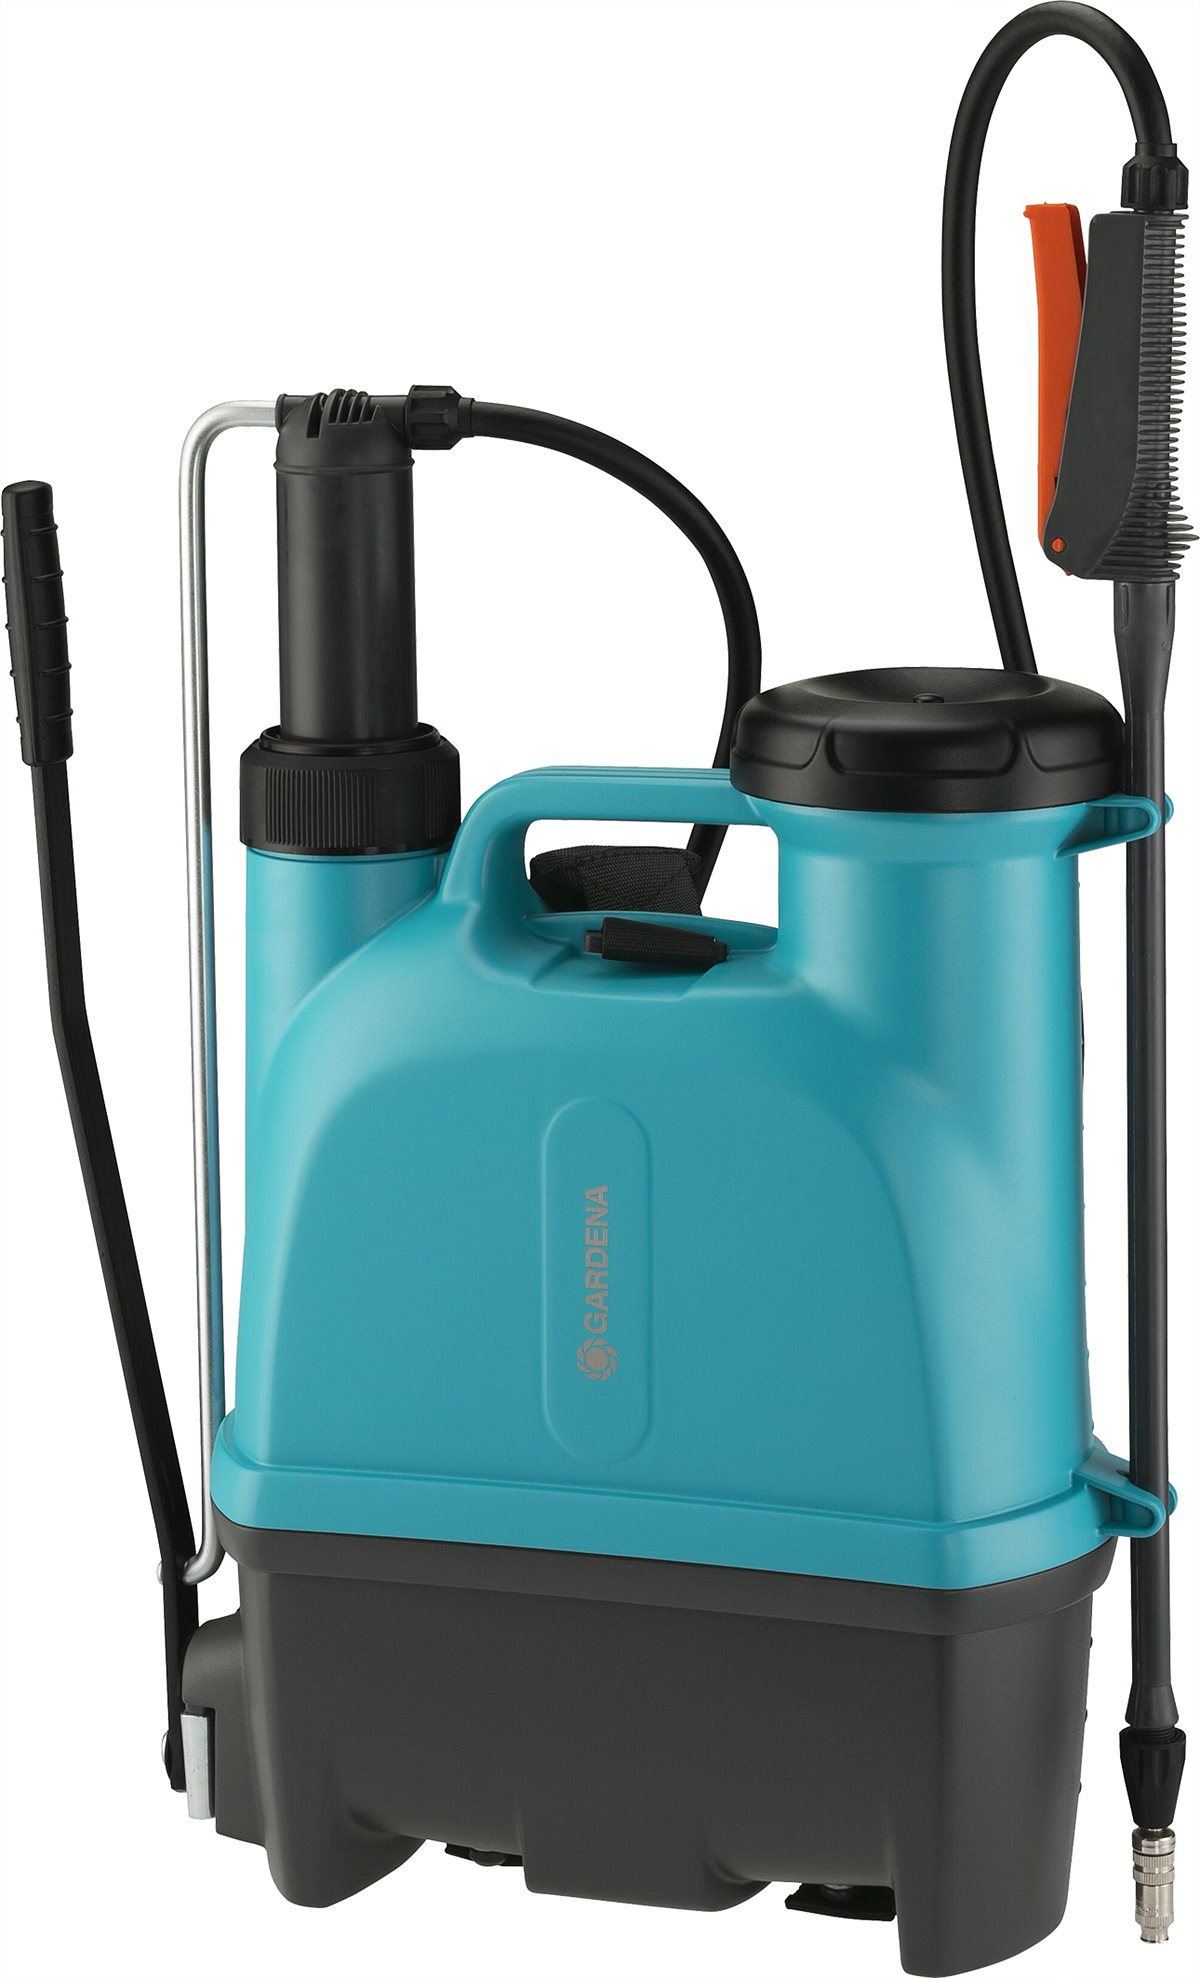 GARDENA Backpack Sprayer 12 L